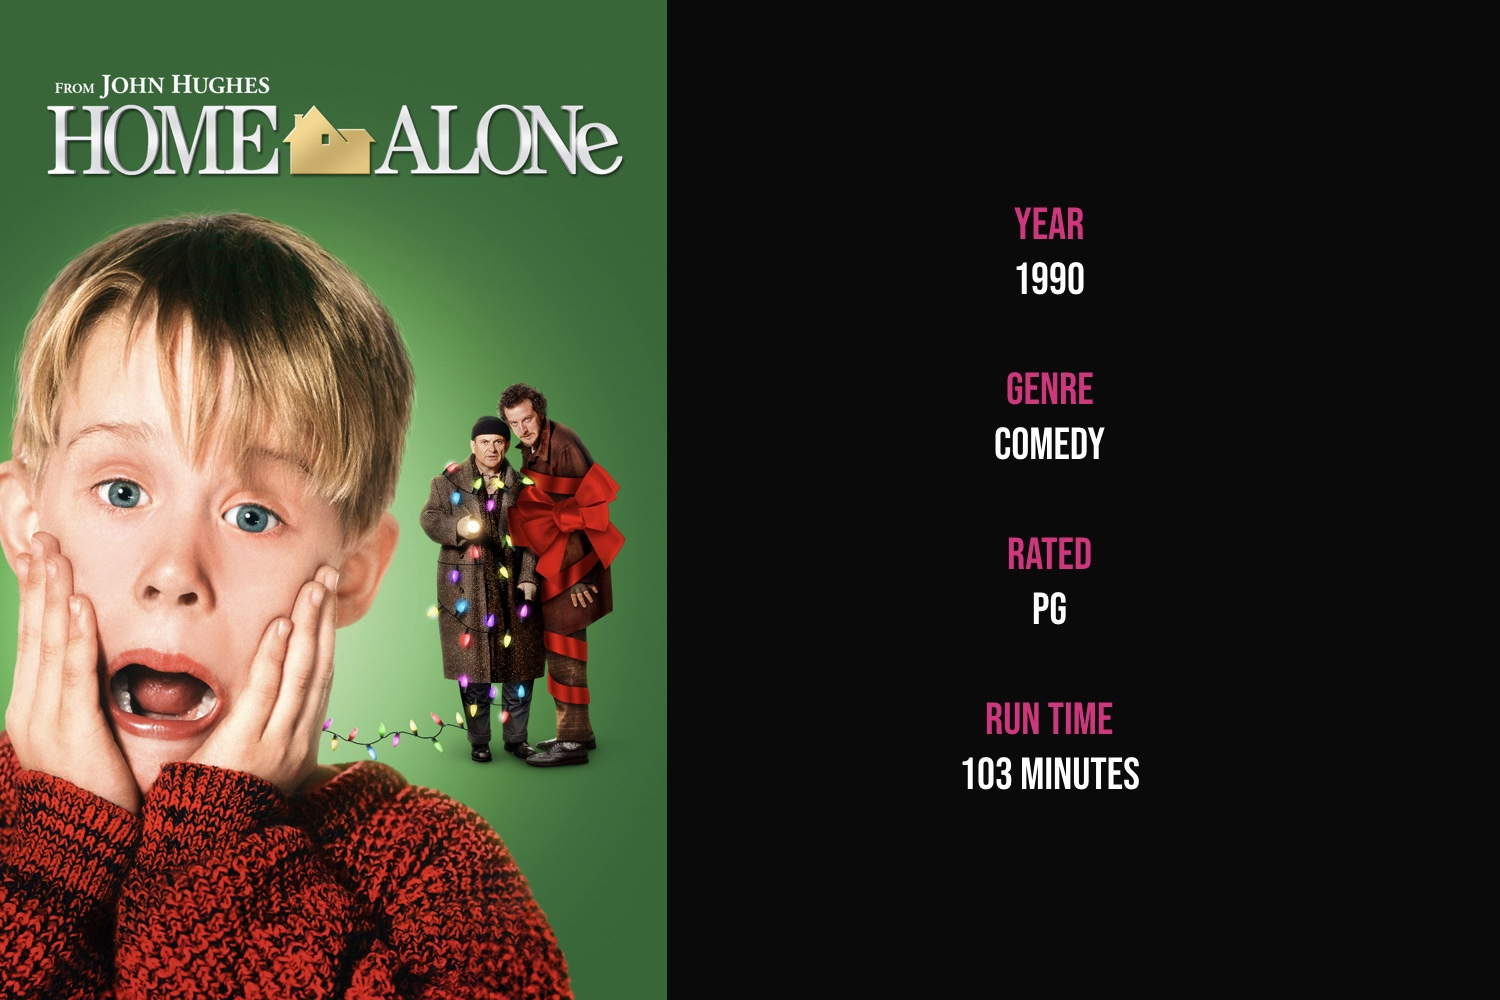 Home Alone - An 8-year-old boy must protect his home from 2 clumsy burglars when his family rushes off to the airport for Christmas vacation and accidentally leaves him behind.iTunes | Amazon